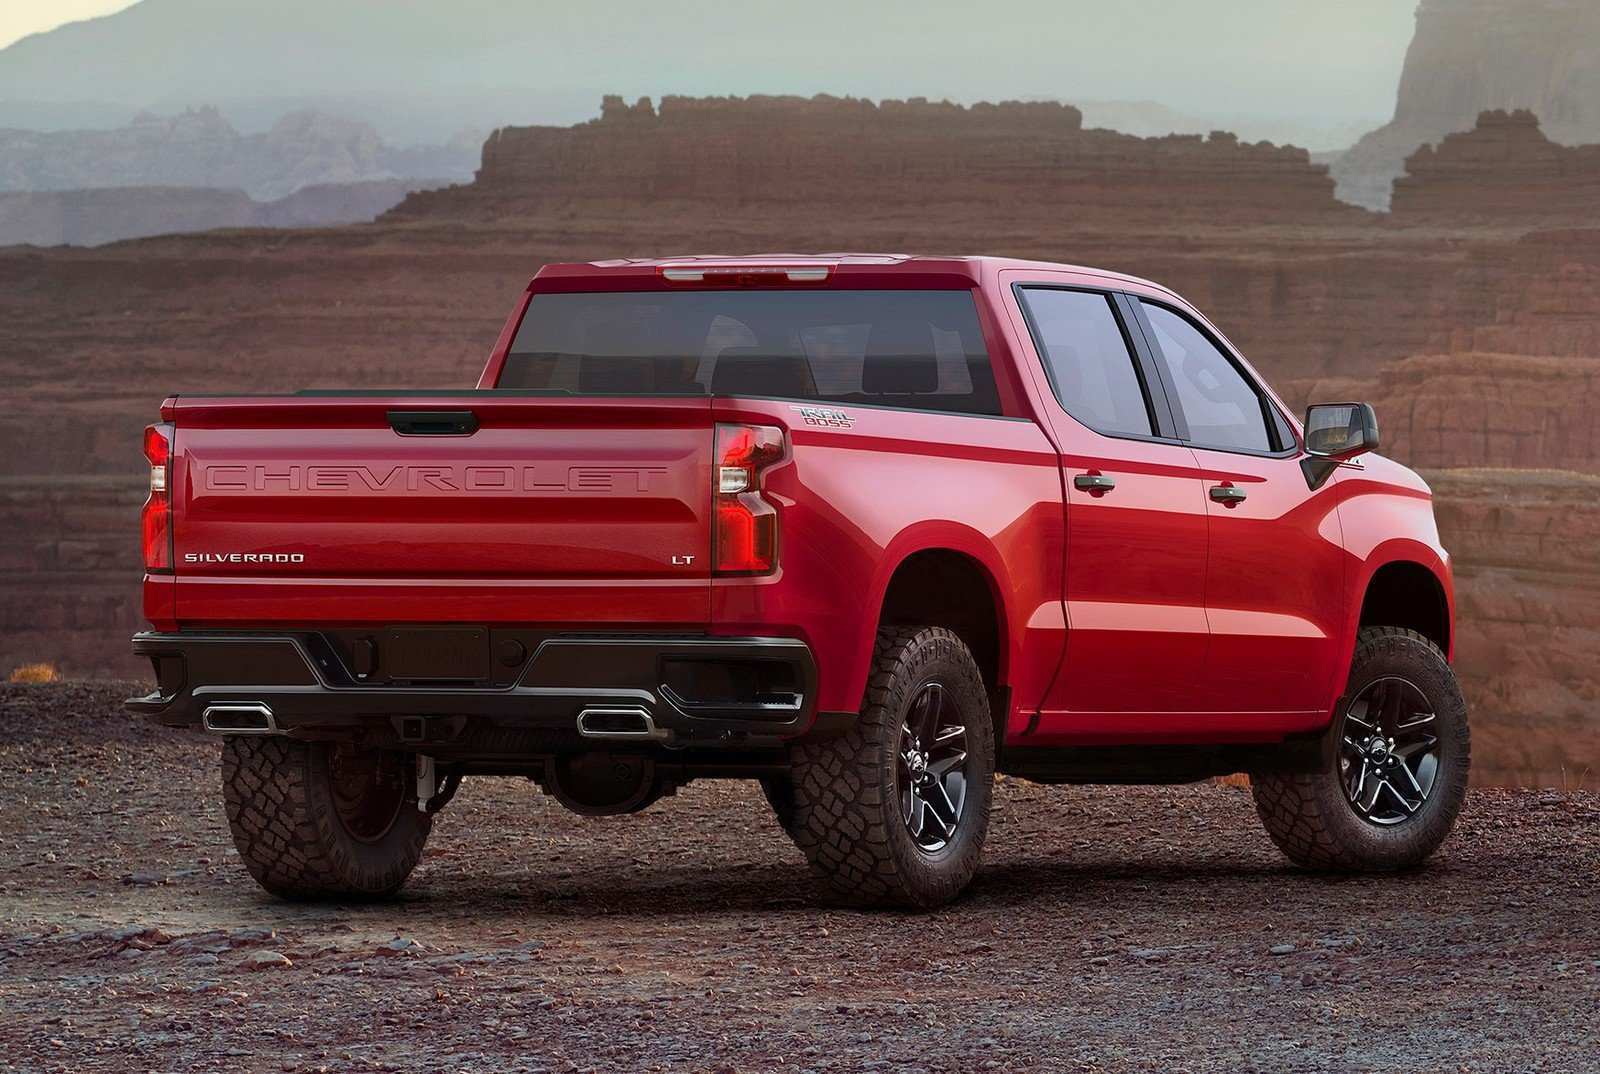 46 Gallery of 2019 Chevrolet Silverado Release Date Spy Shoot with 2019 Chevrolet Silverado Release Date